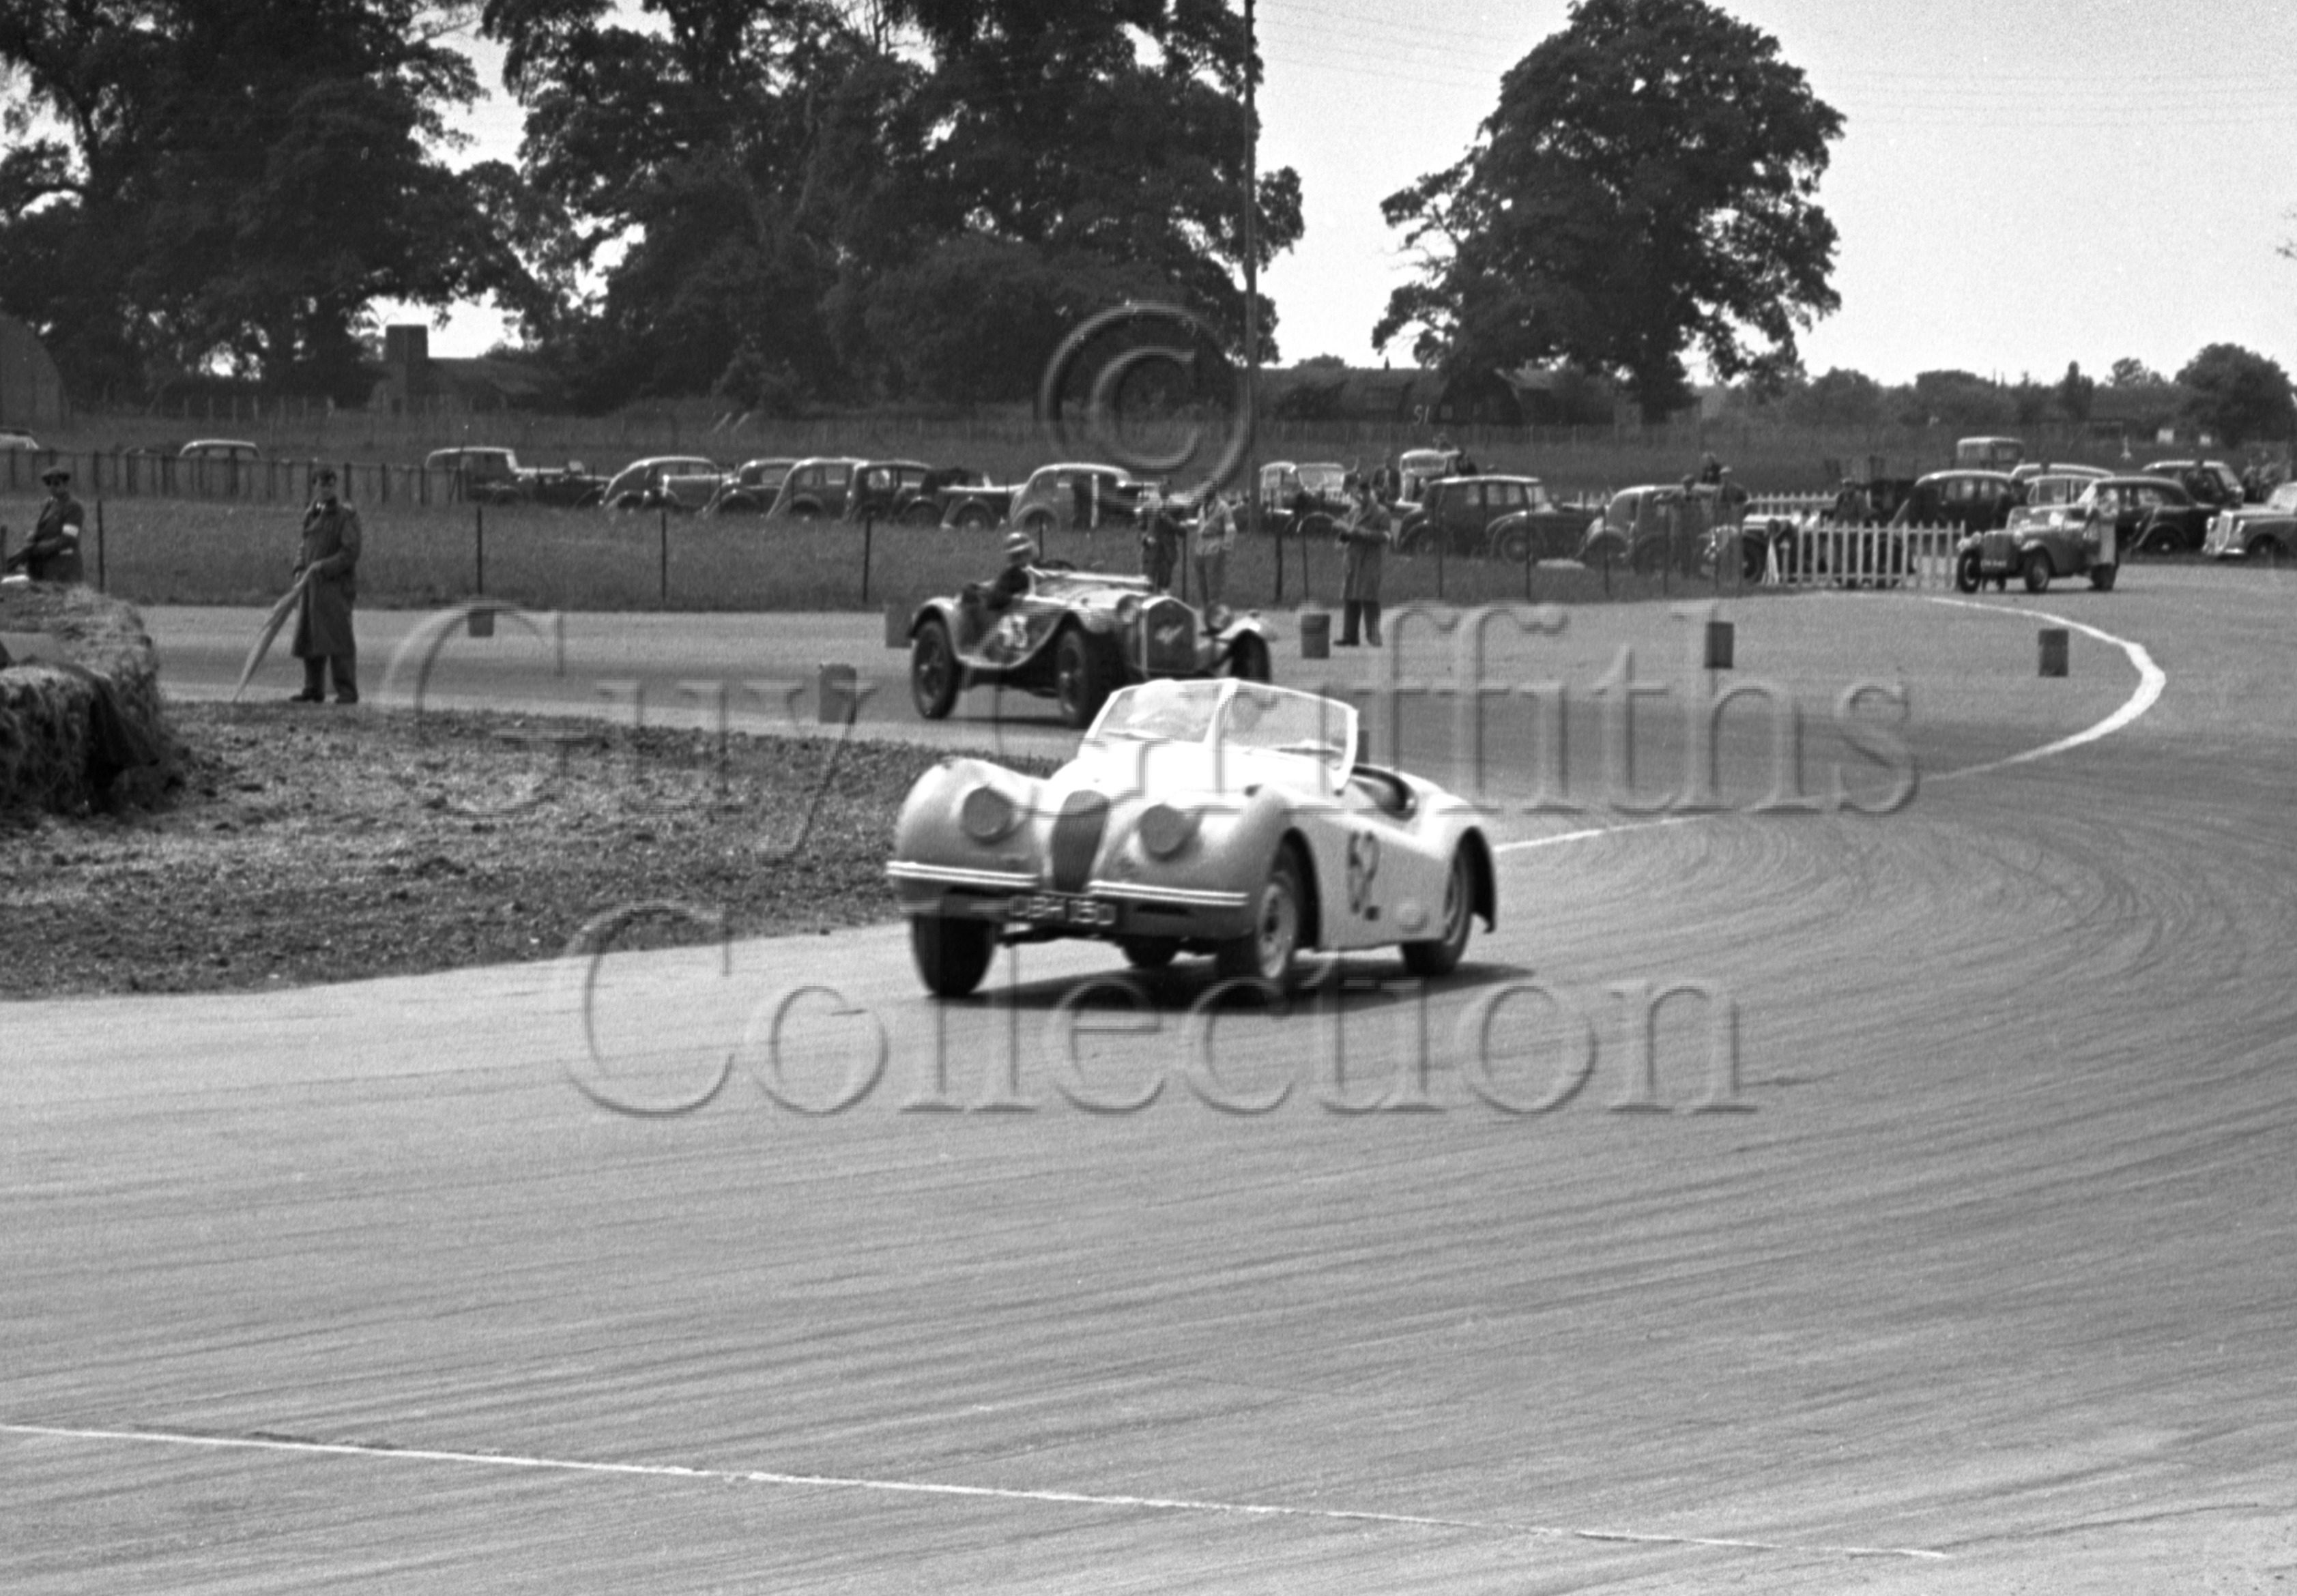 55-953–G-Lee–Jaguar–Silverstone–07-06-1952.jpg - The Guy Griffiths Collection